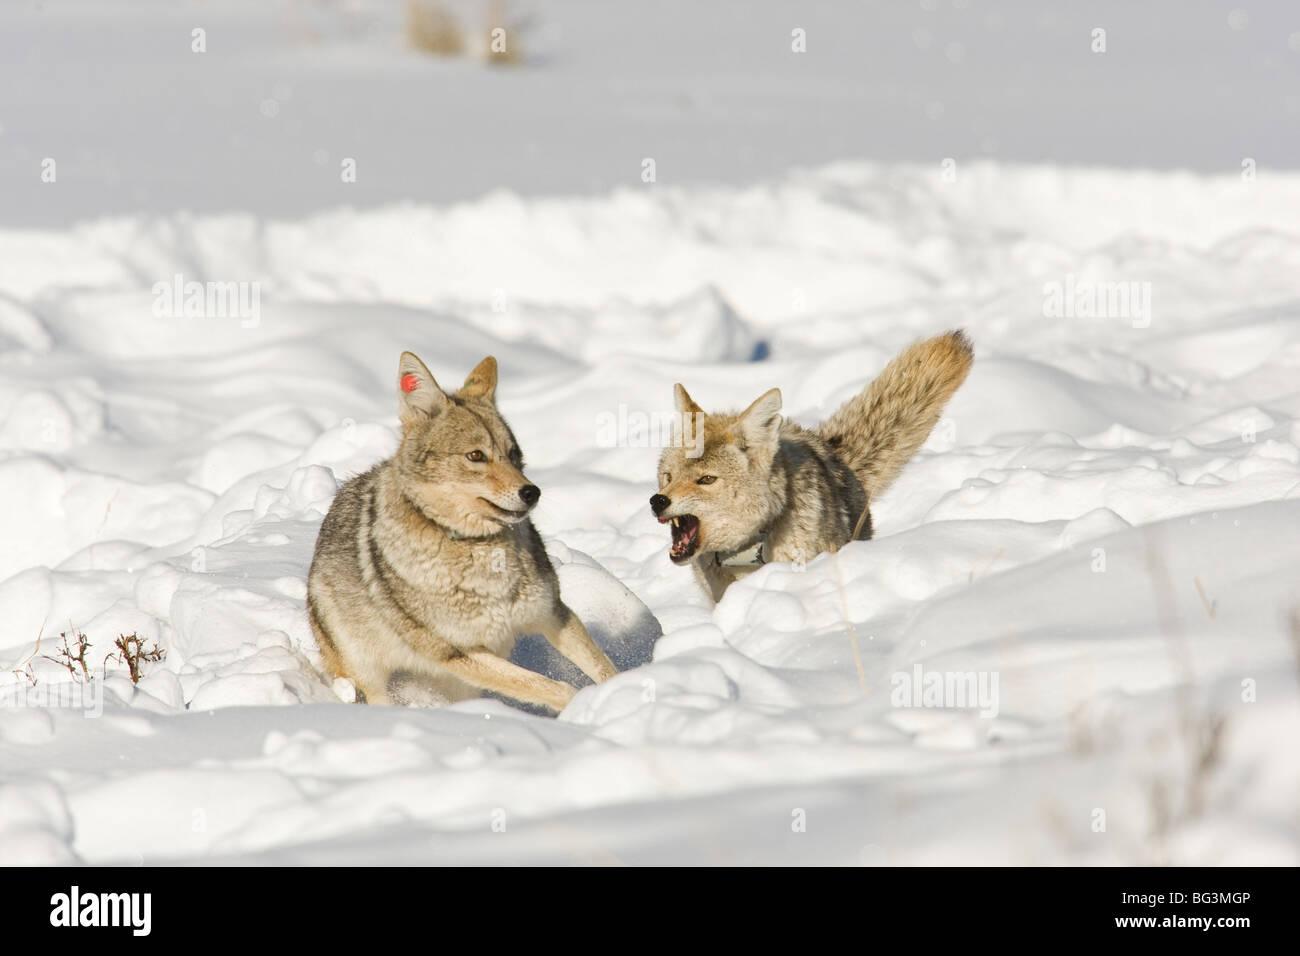 Coyote (Canis latrans) snarling and chasing a mate in the snow - Stock Image